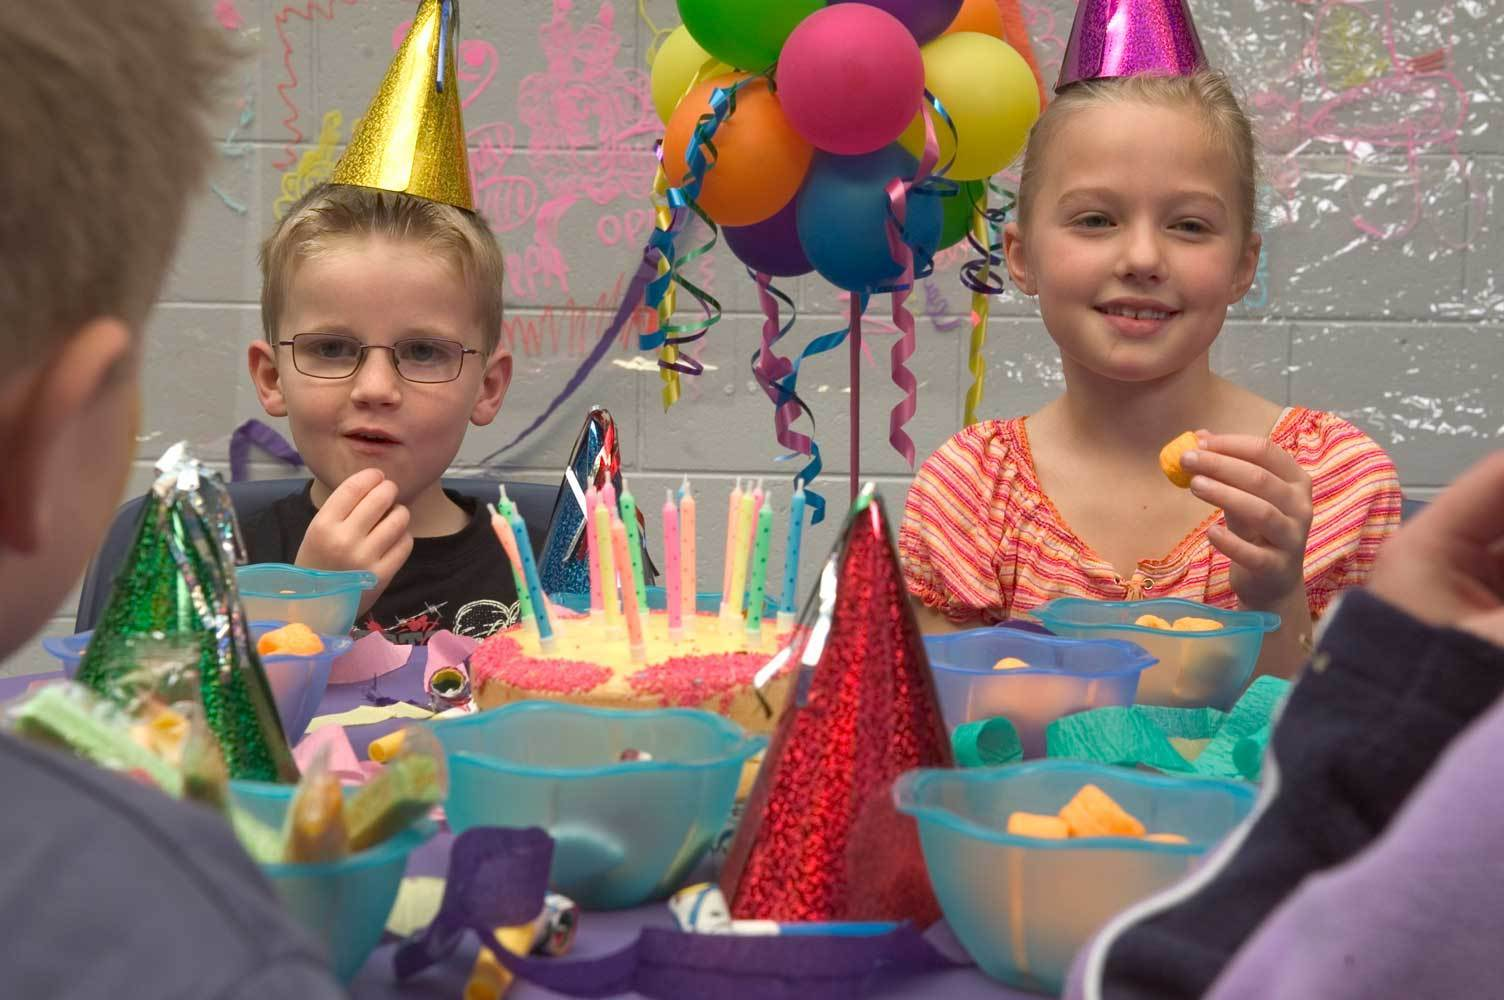 Kids with party hats on at birthday party